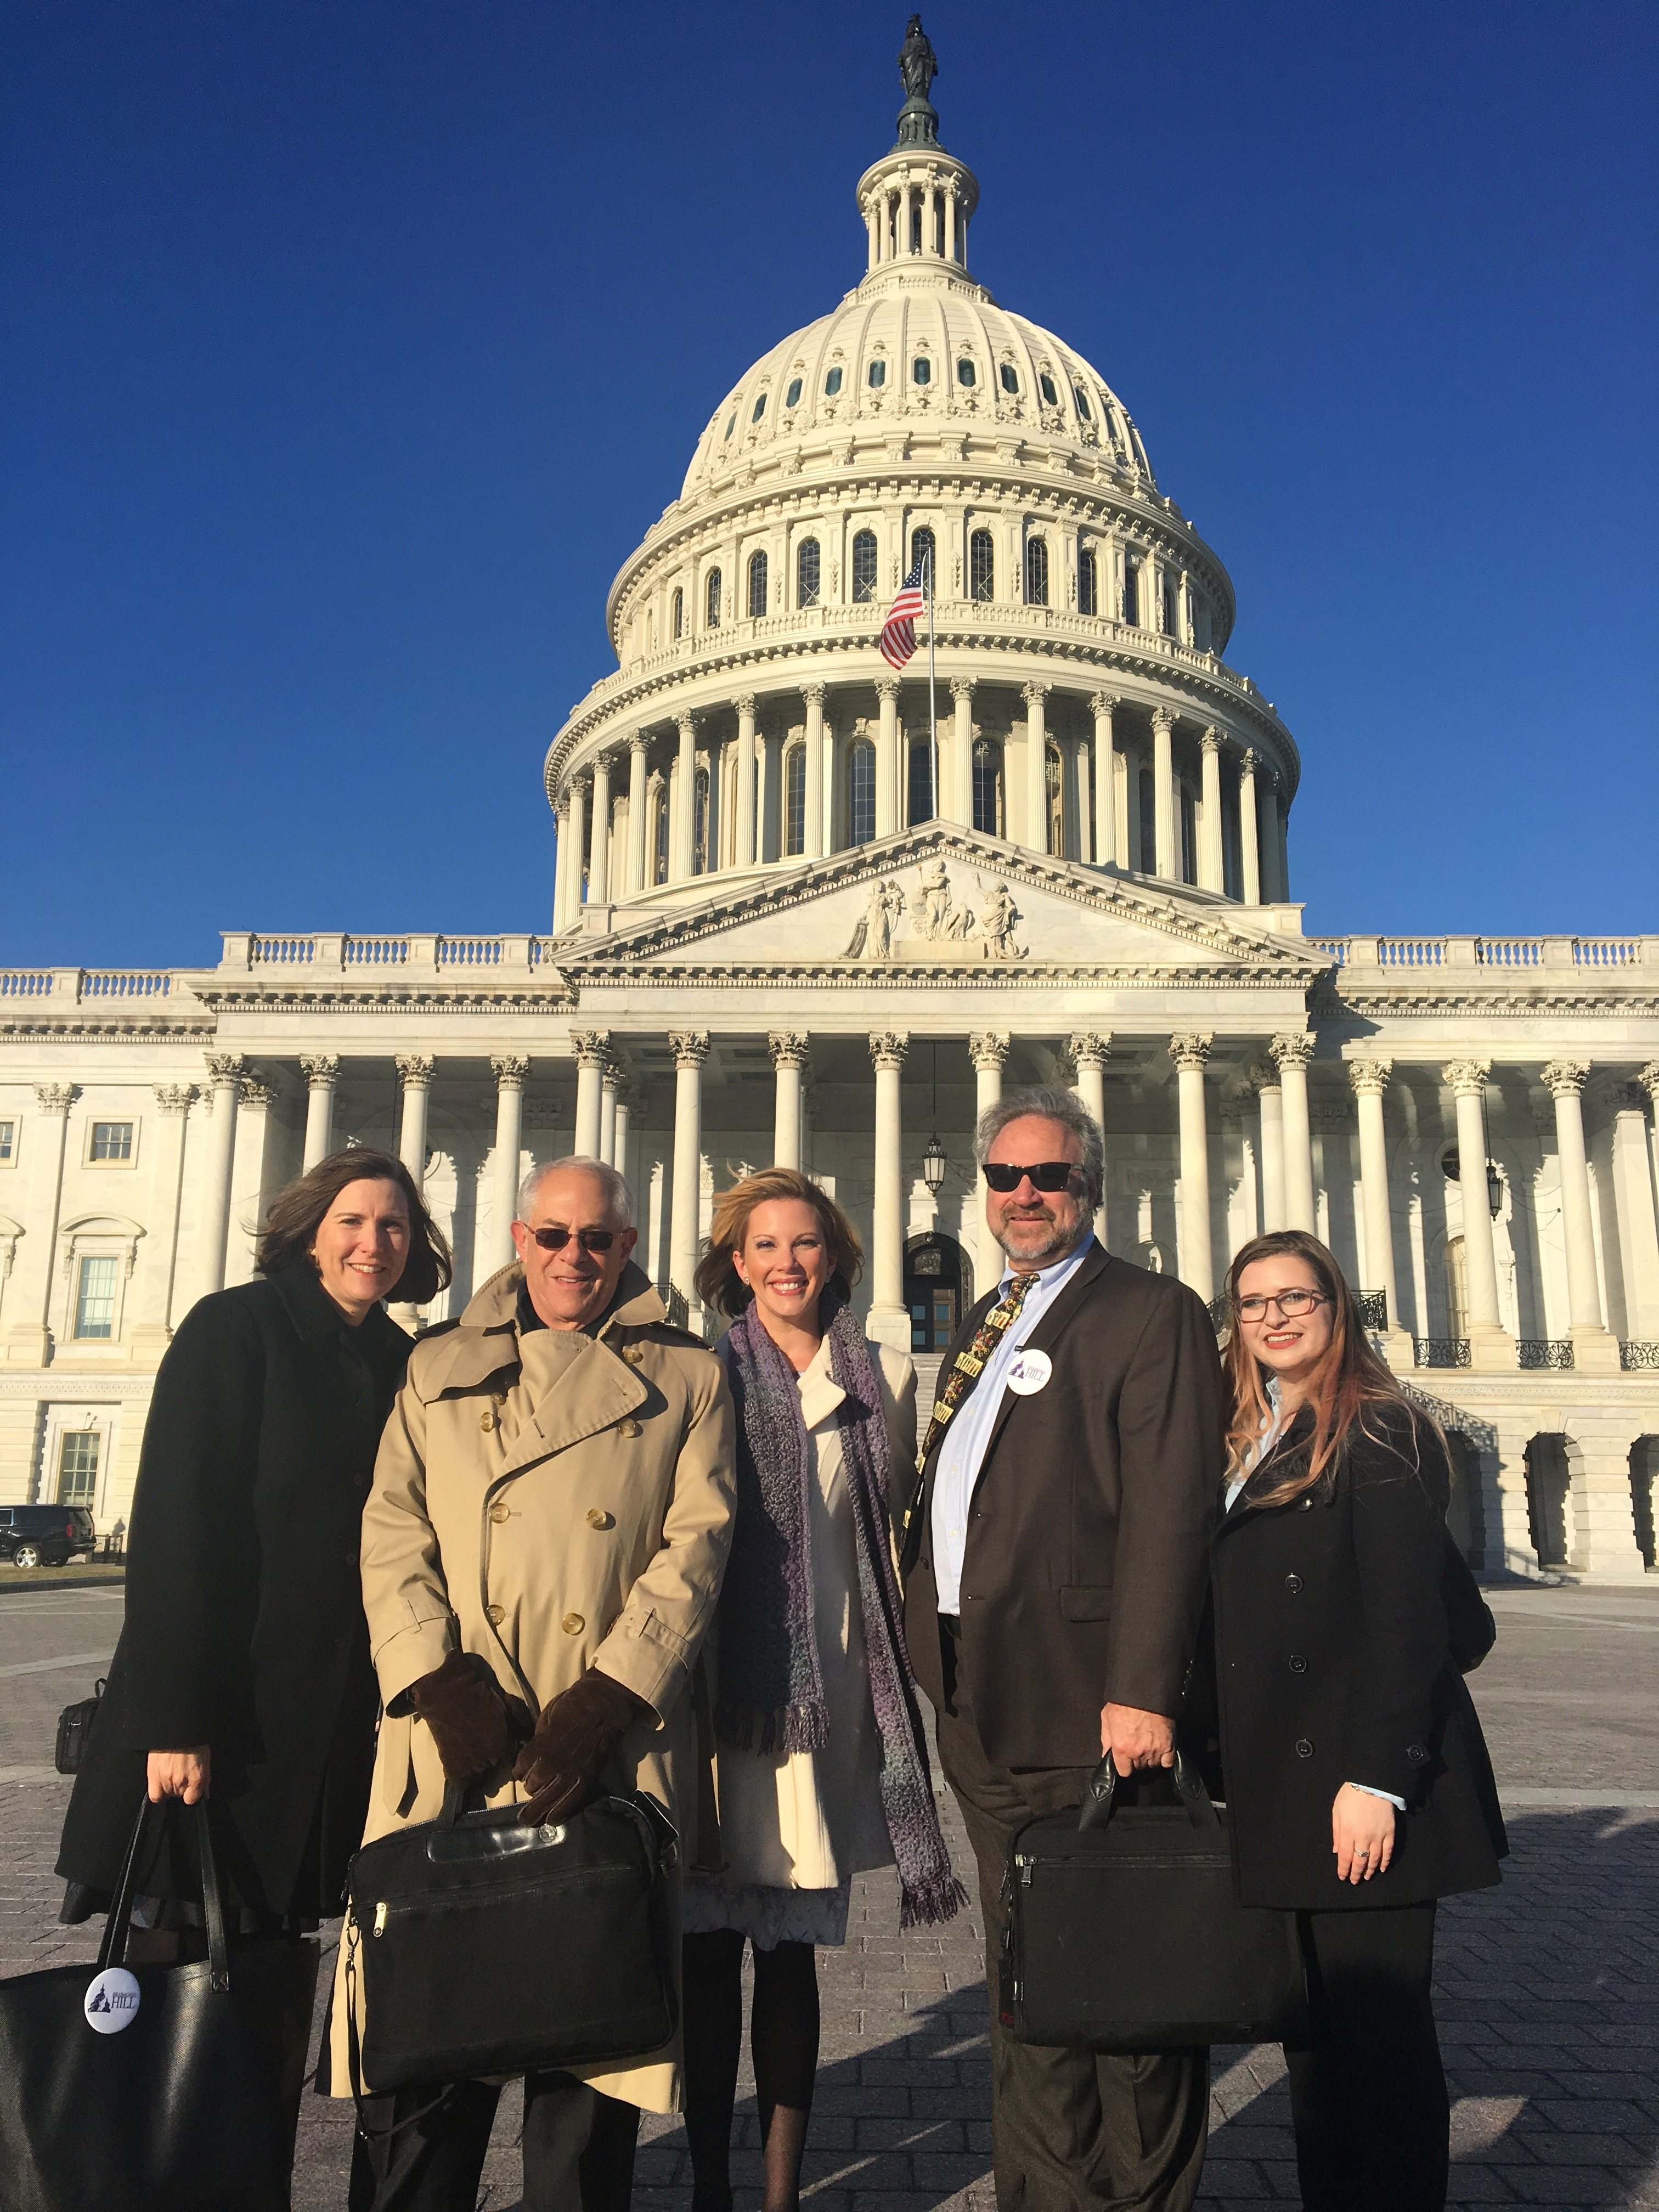 Angelica Heidi Brehm with Dr. Rapoport, Katie Golden, Dr. Cowan, and Ellie Donner-Klein in front of the U.S. Capitol.